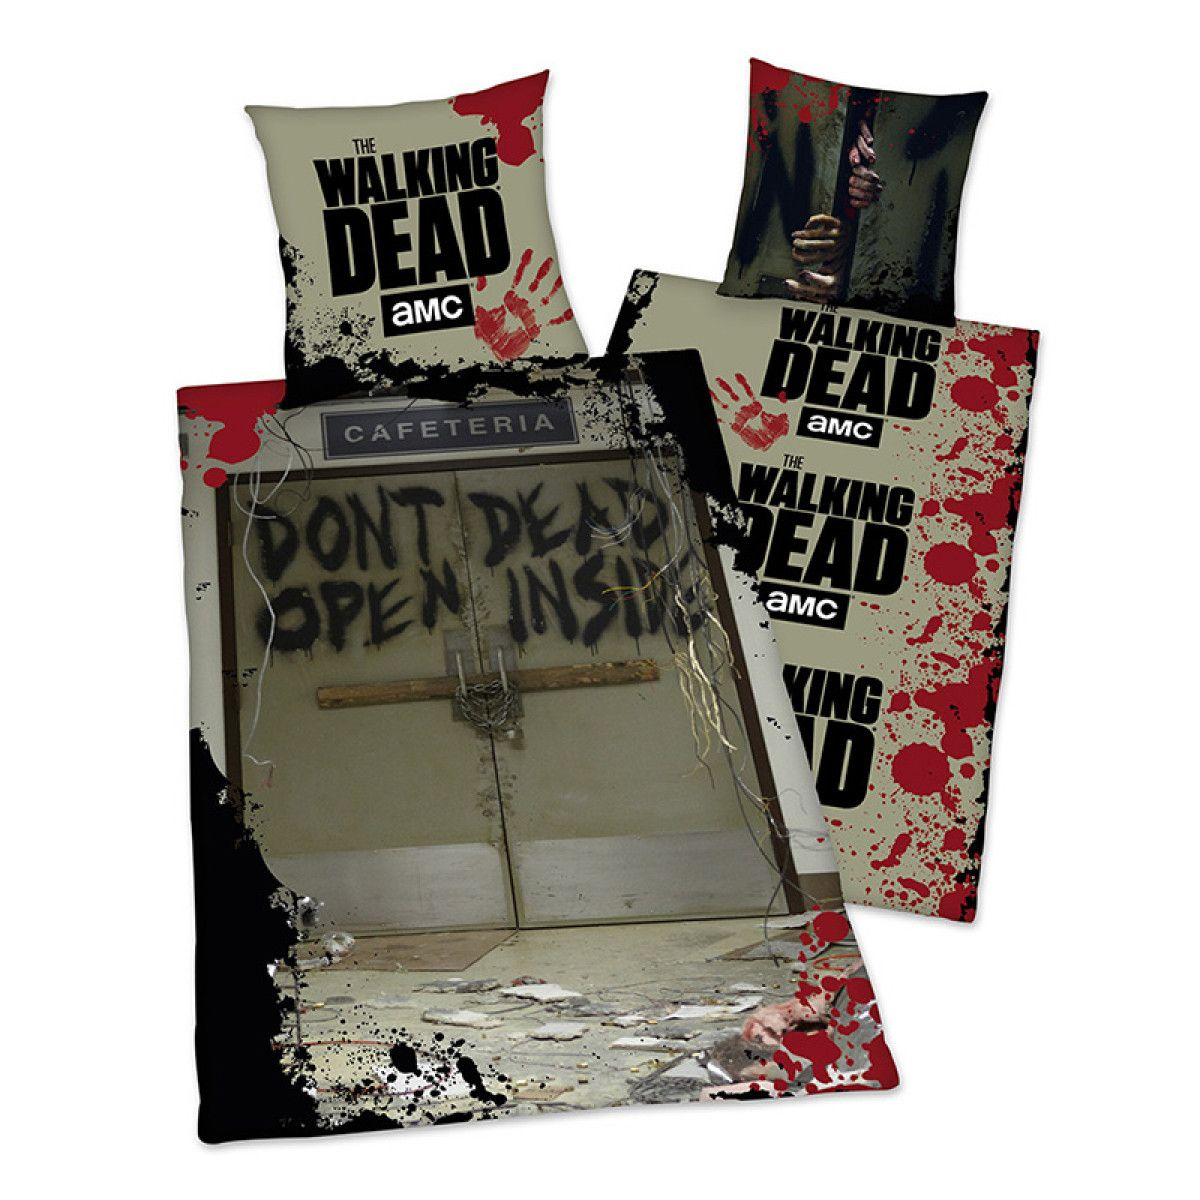 Breaking Bad Bettwäsche This Reversible The Walking Dead Don't Open Single Cotton Duvet Cover Set Features A Creepy Scene From The Serie… | The Walking Dead, Duvet Cover Sets, Duvet Covers